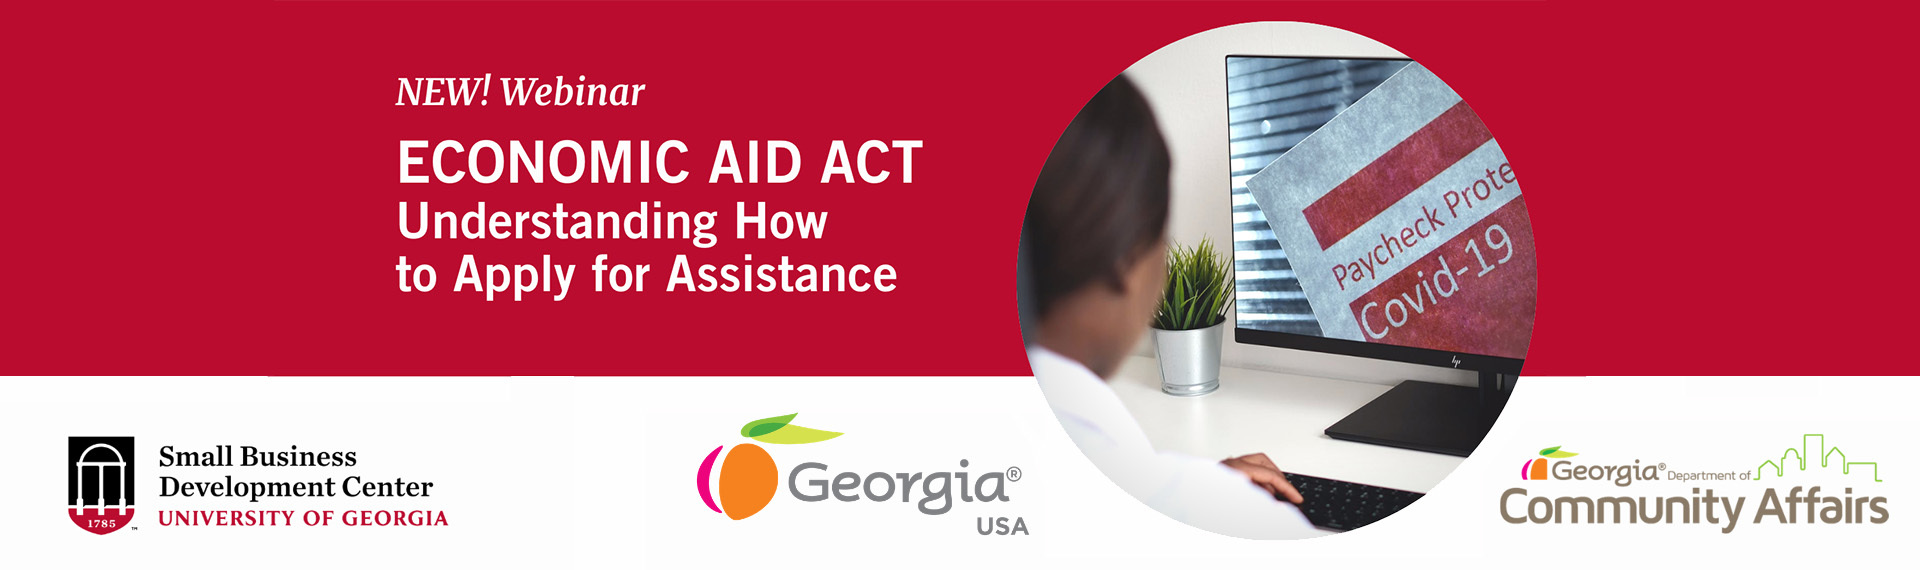 A graphic image promoting UGA SBDC's assistance understanding and applying for federal relied funding